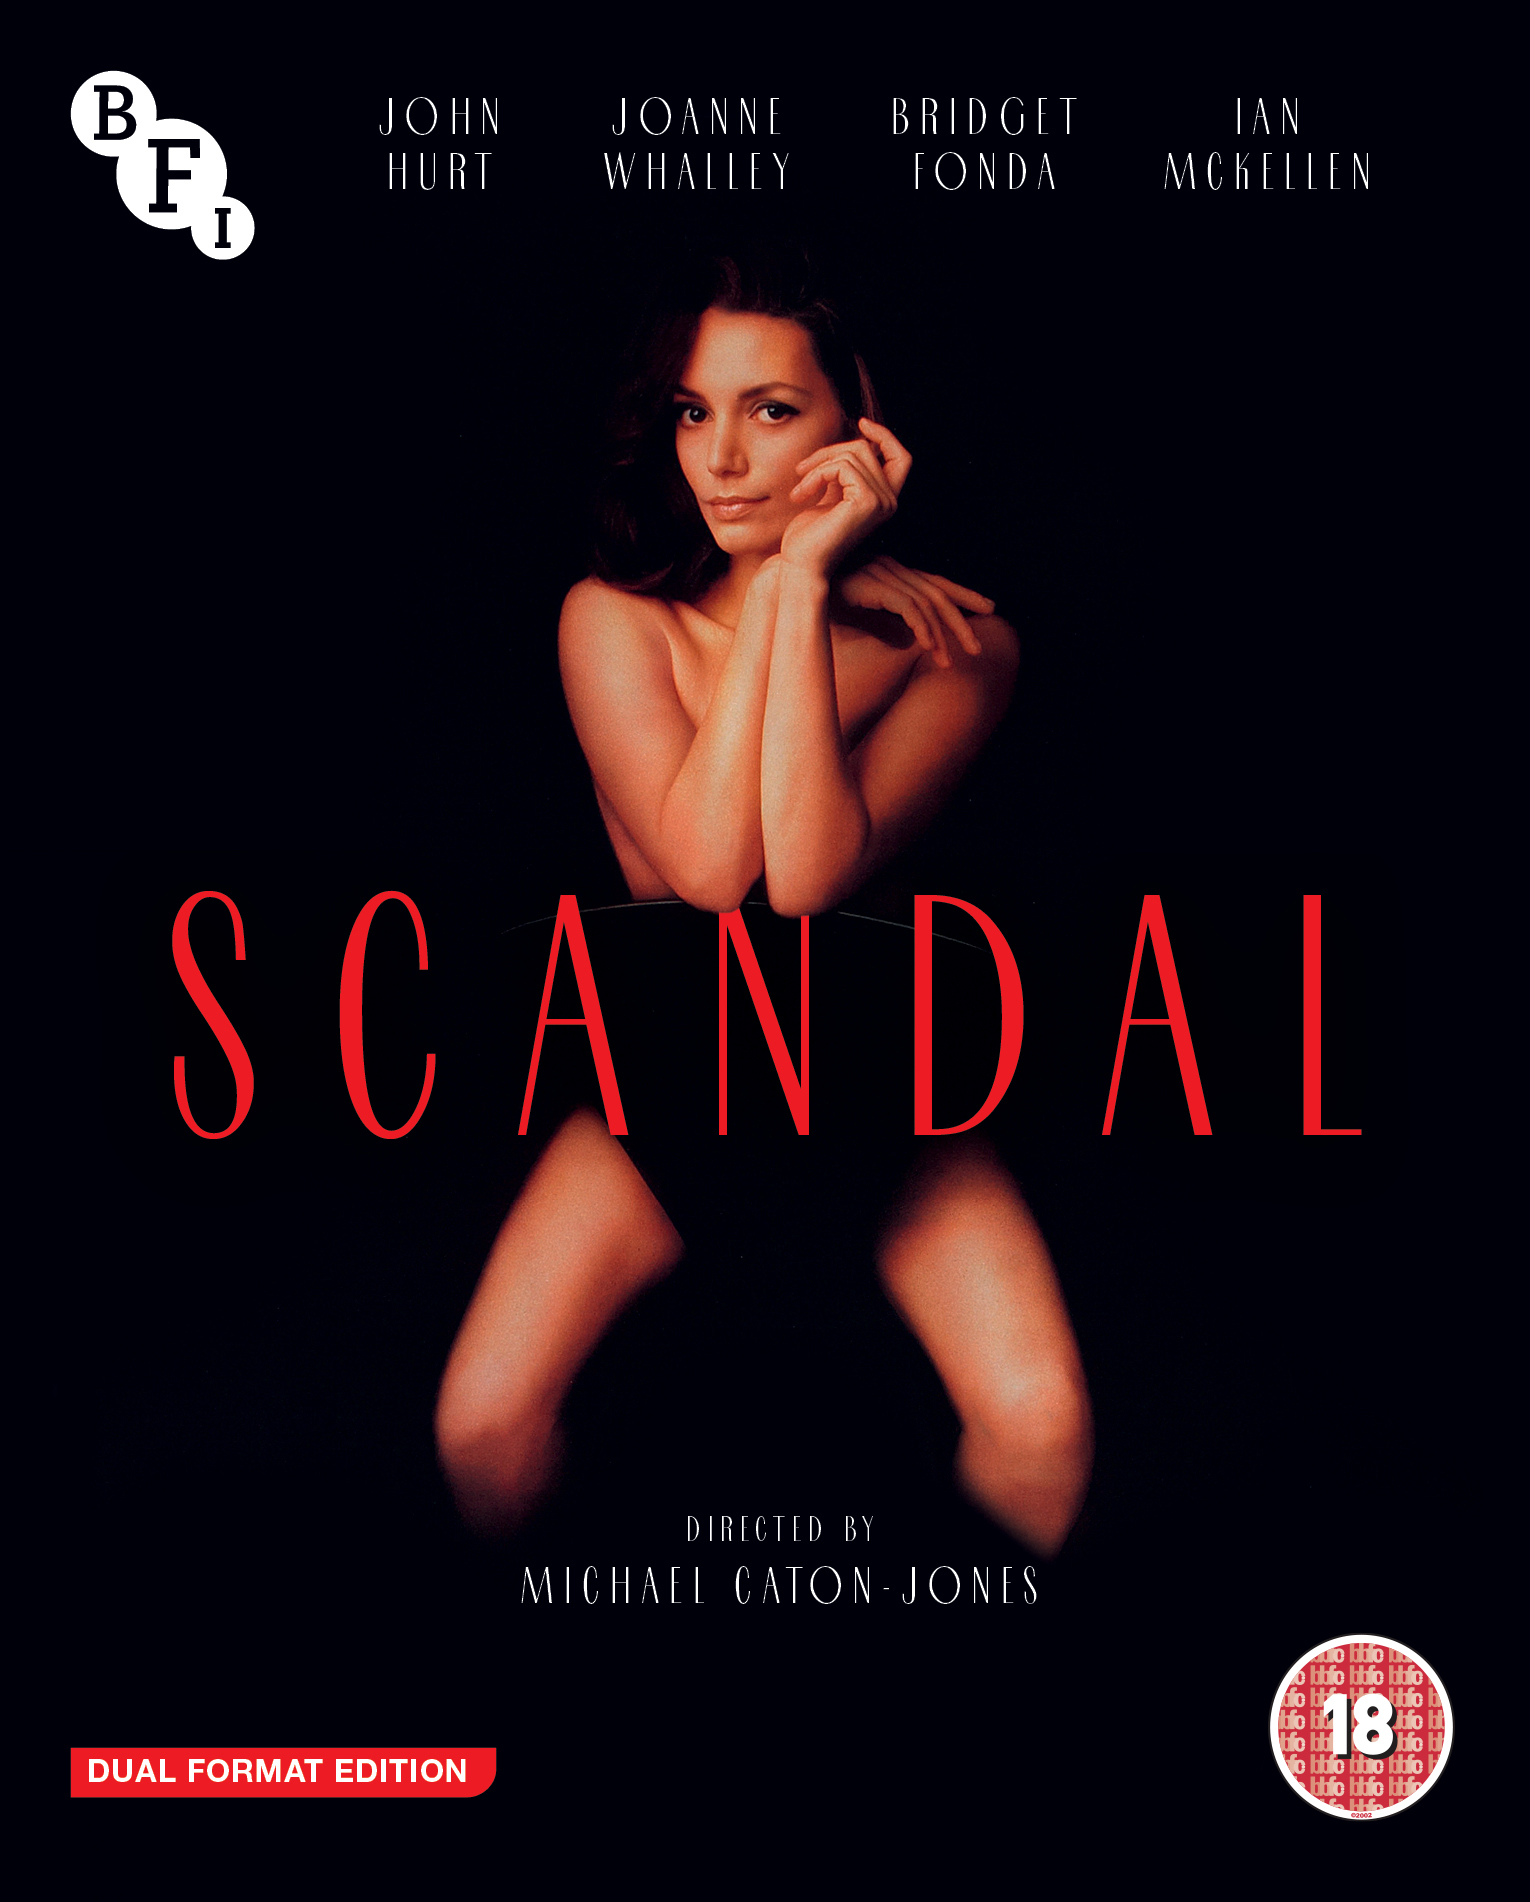 Buy PRE-ORDER Scandal (30th Anniversary Dual Format Edition)